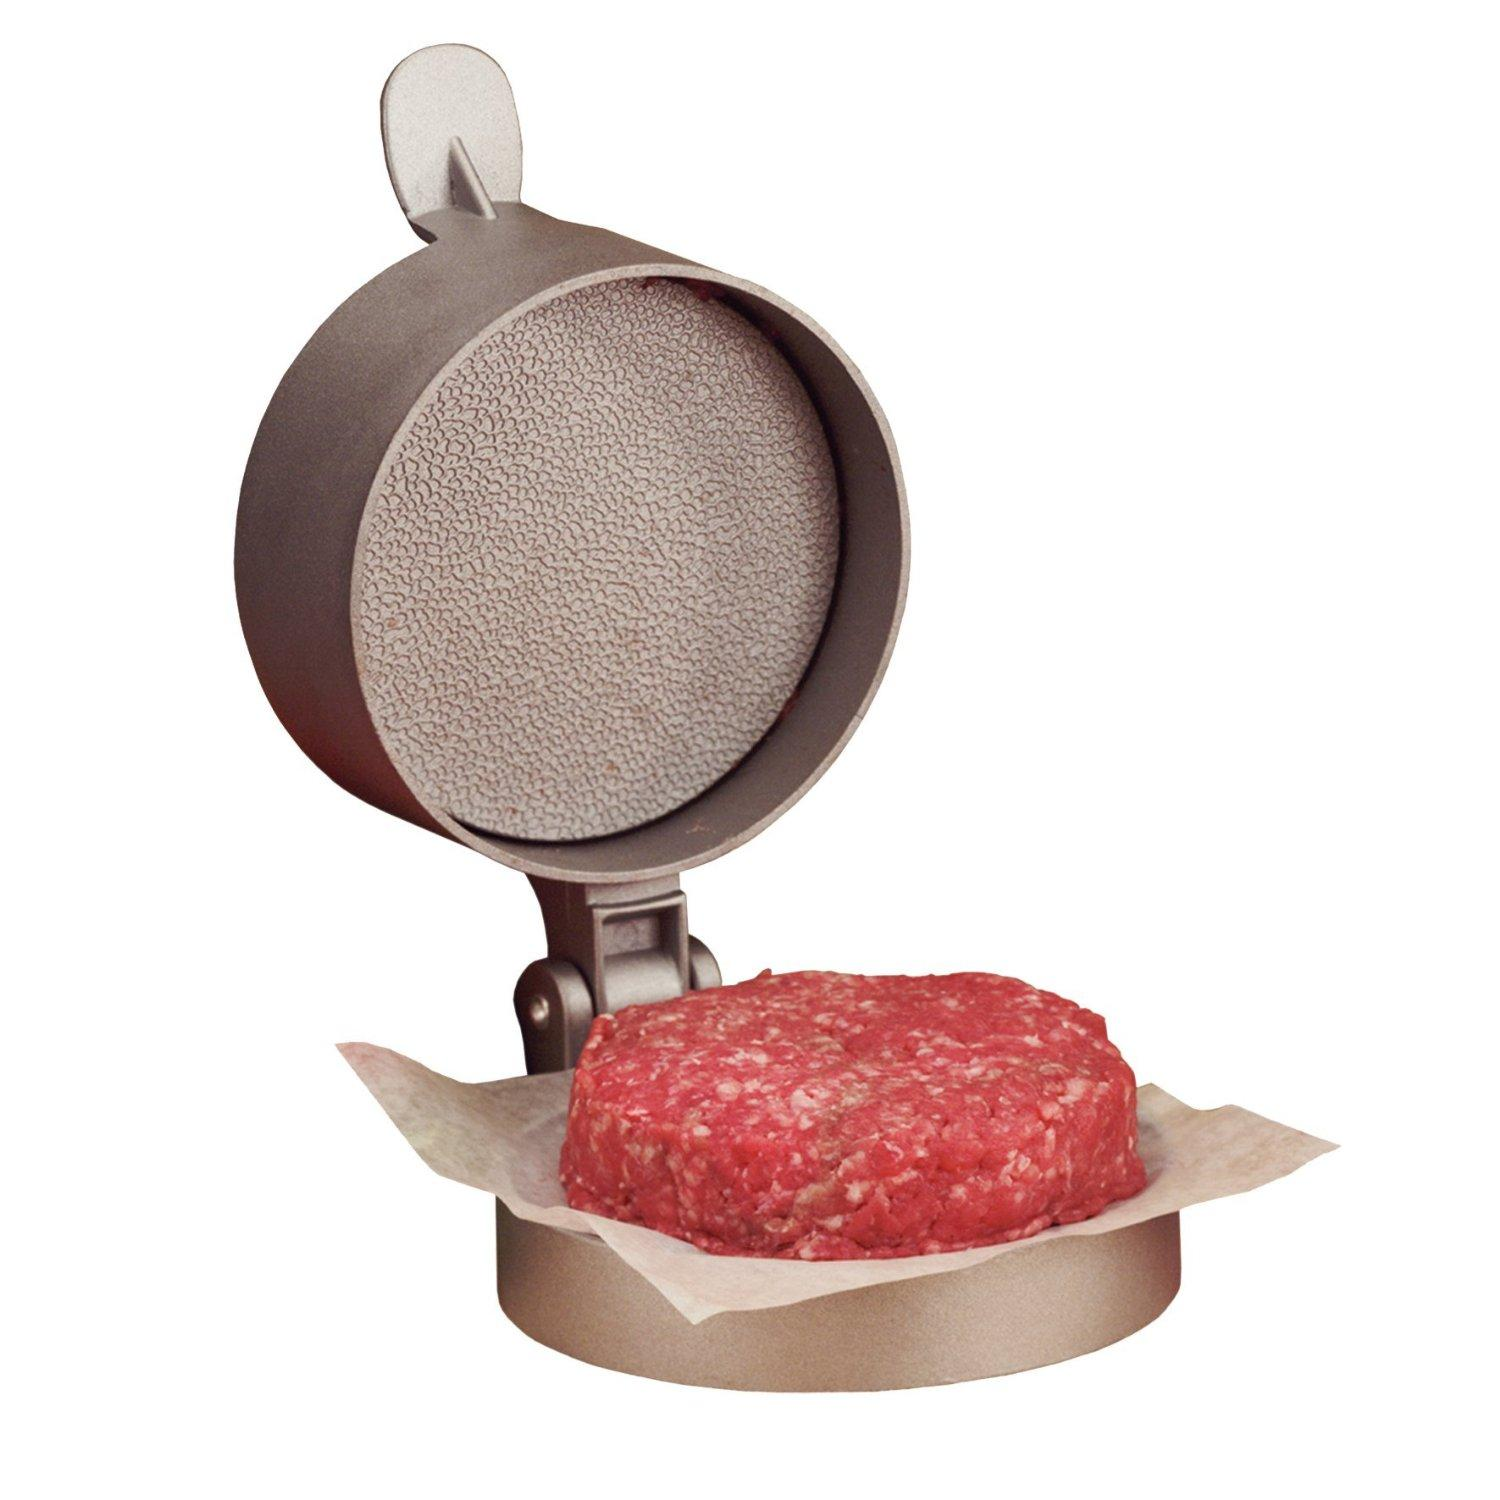 Non-stick single hamburger press